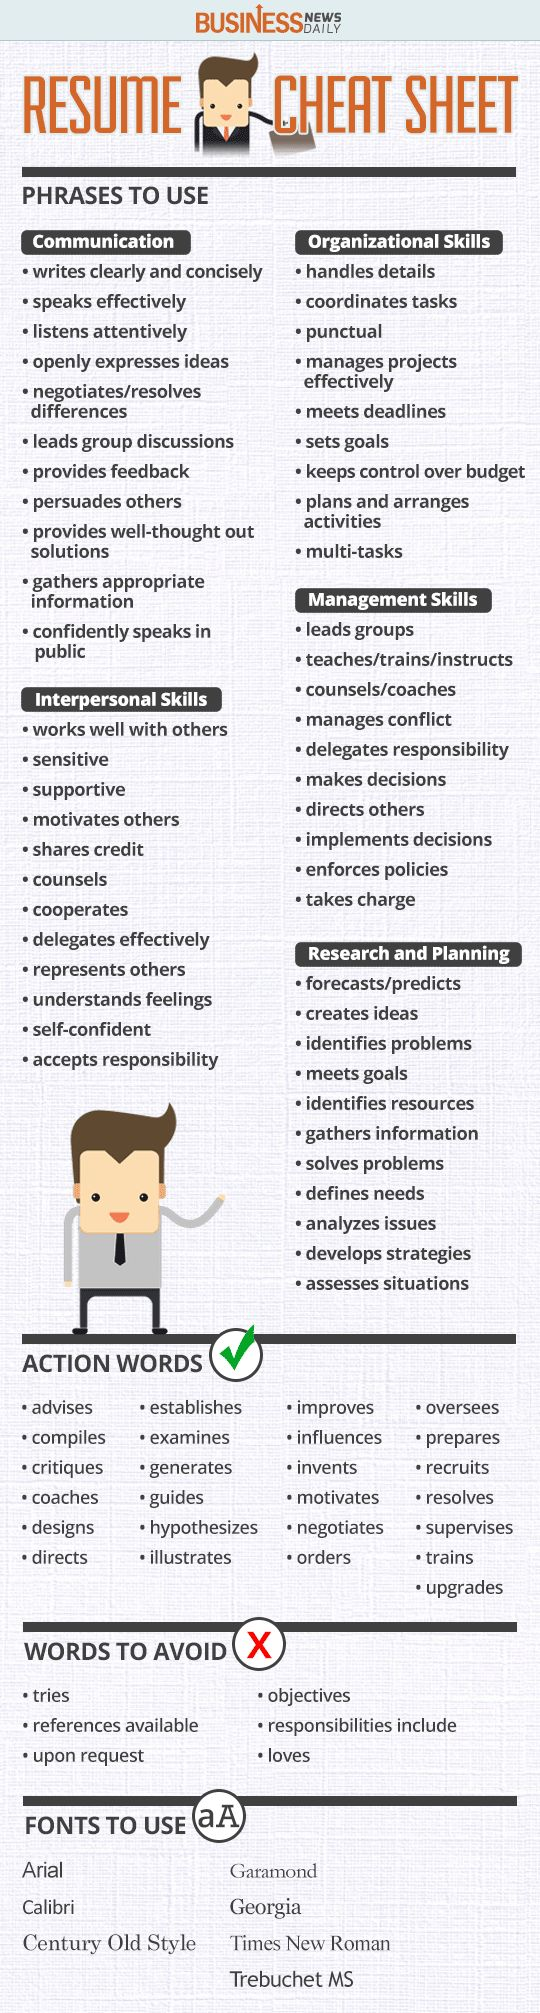 Opposenewapstandardsus  Splendid  Ideas About Resume On Pinterest  Cv Format Resume Cv And  With Entrancing Resume Cheat Sheet Infographic Andrews Almost Done With A Complete Unit On Employment Which With Astonishing Analytical Skills Resume Also Sample Resume Customer Service In Addition Medical Records Resume And Account Payable Resume As Well As Porter Resume Additionally Resume For From Pinterestcom With Opposenewapstandardsus  Entrancing  Ideas About Resume On Pinterest  Cv Format Resume Cv And  With Astonishing Resume Cheat Sheet Infographic Andrews Almost Done With A Complete Unit On Employment Which And Splendid Analytical Skills Resume Also Sample Resume Customer Service In Addition Medical Records Resume From Pinterestcom